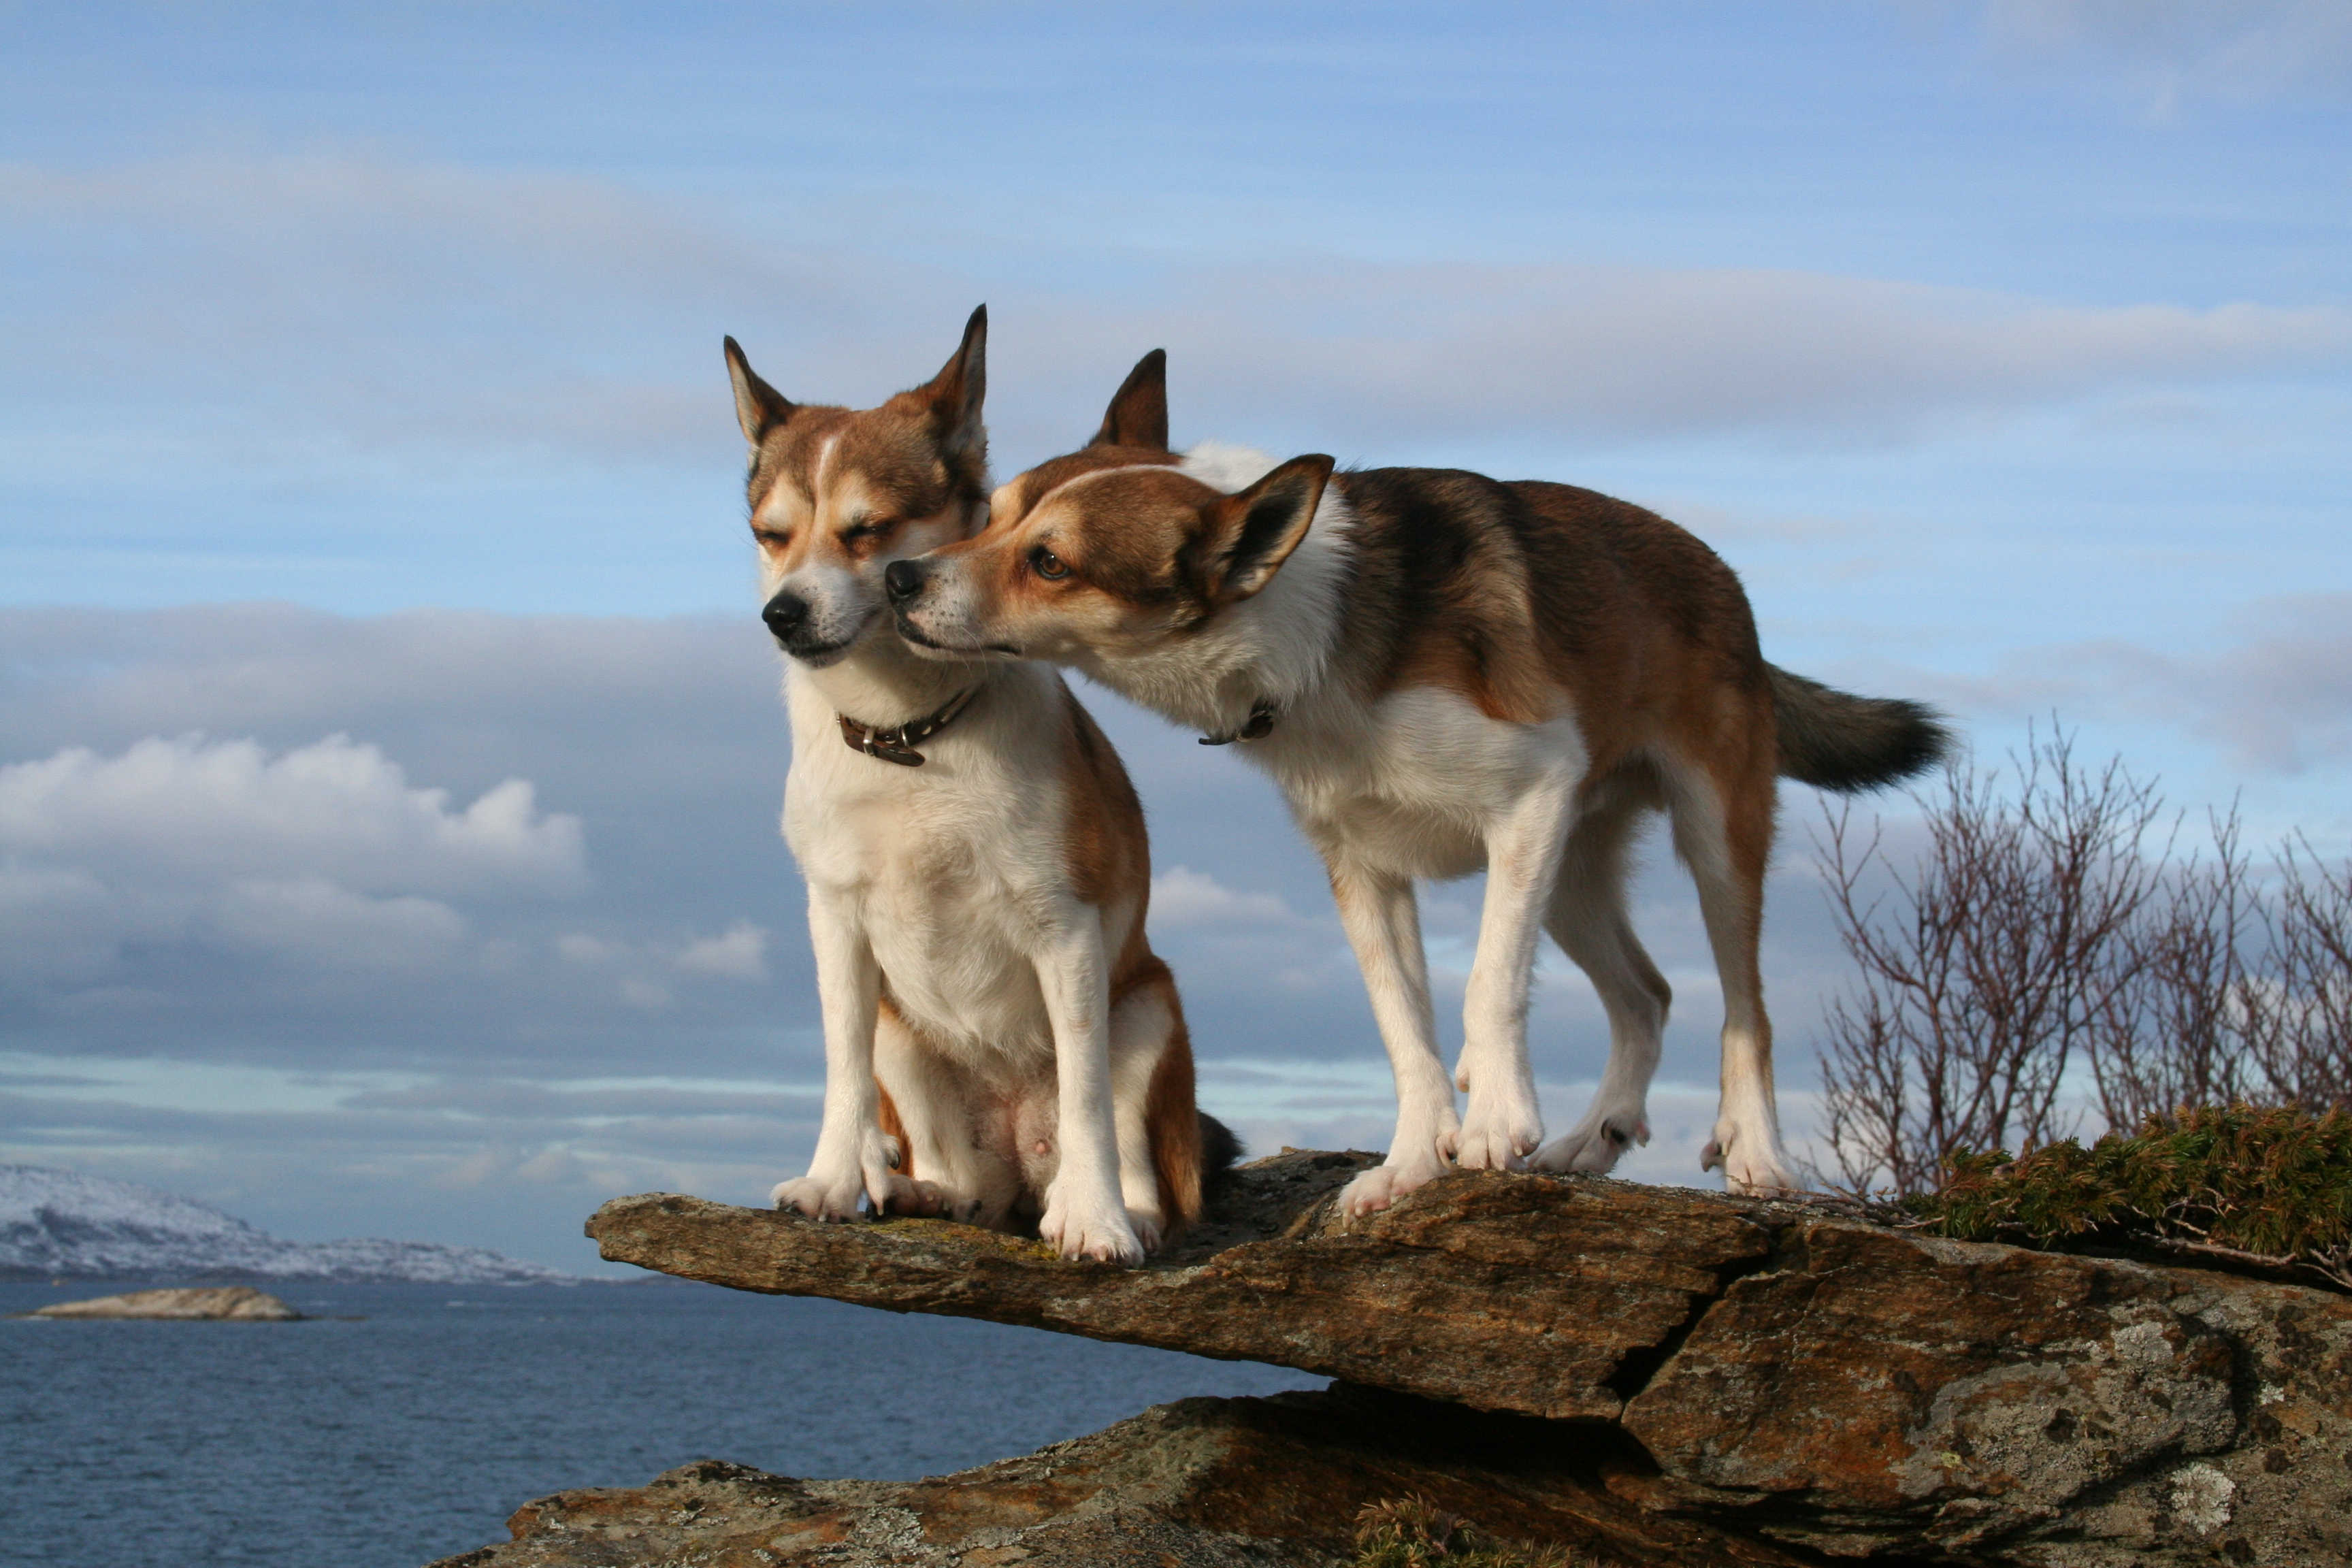 417311473_8a11857241_o_d - Canines in love - Photos Unlimited